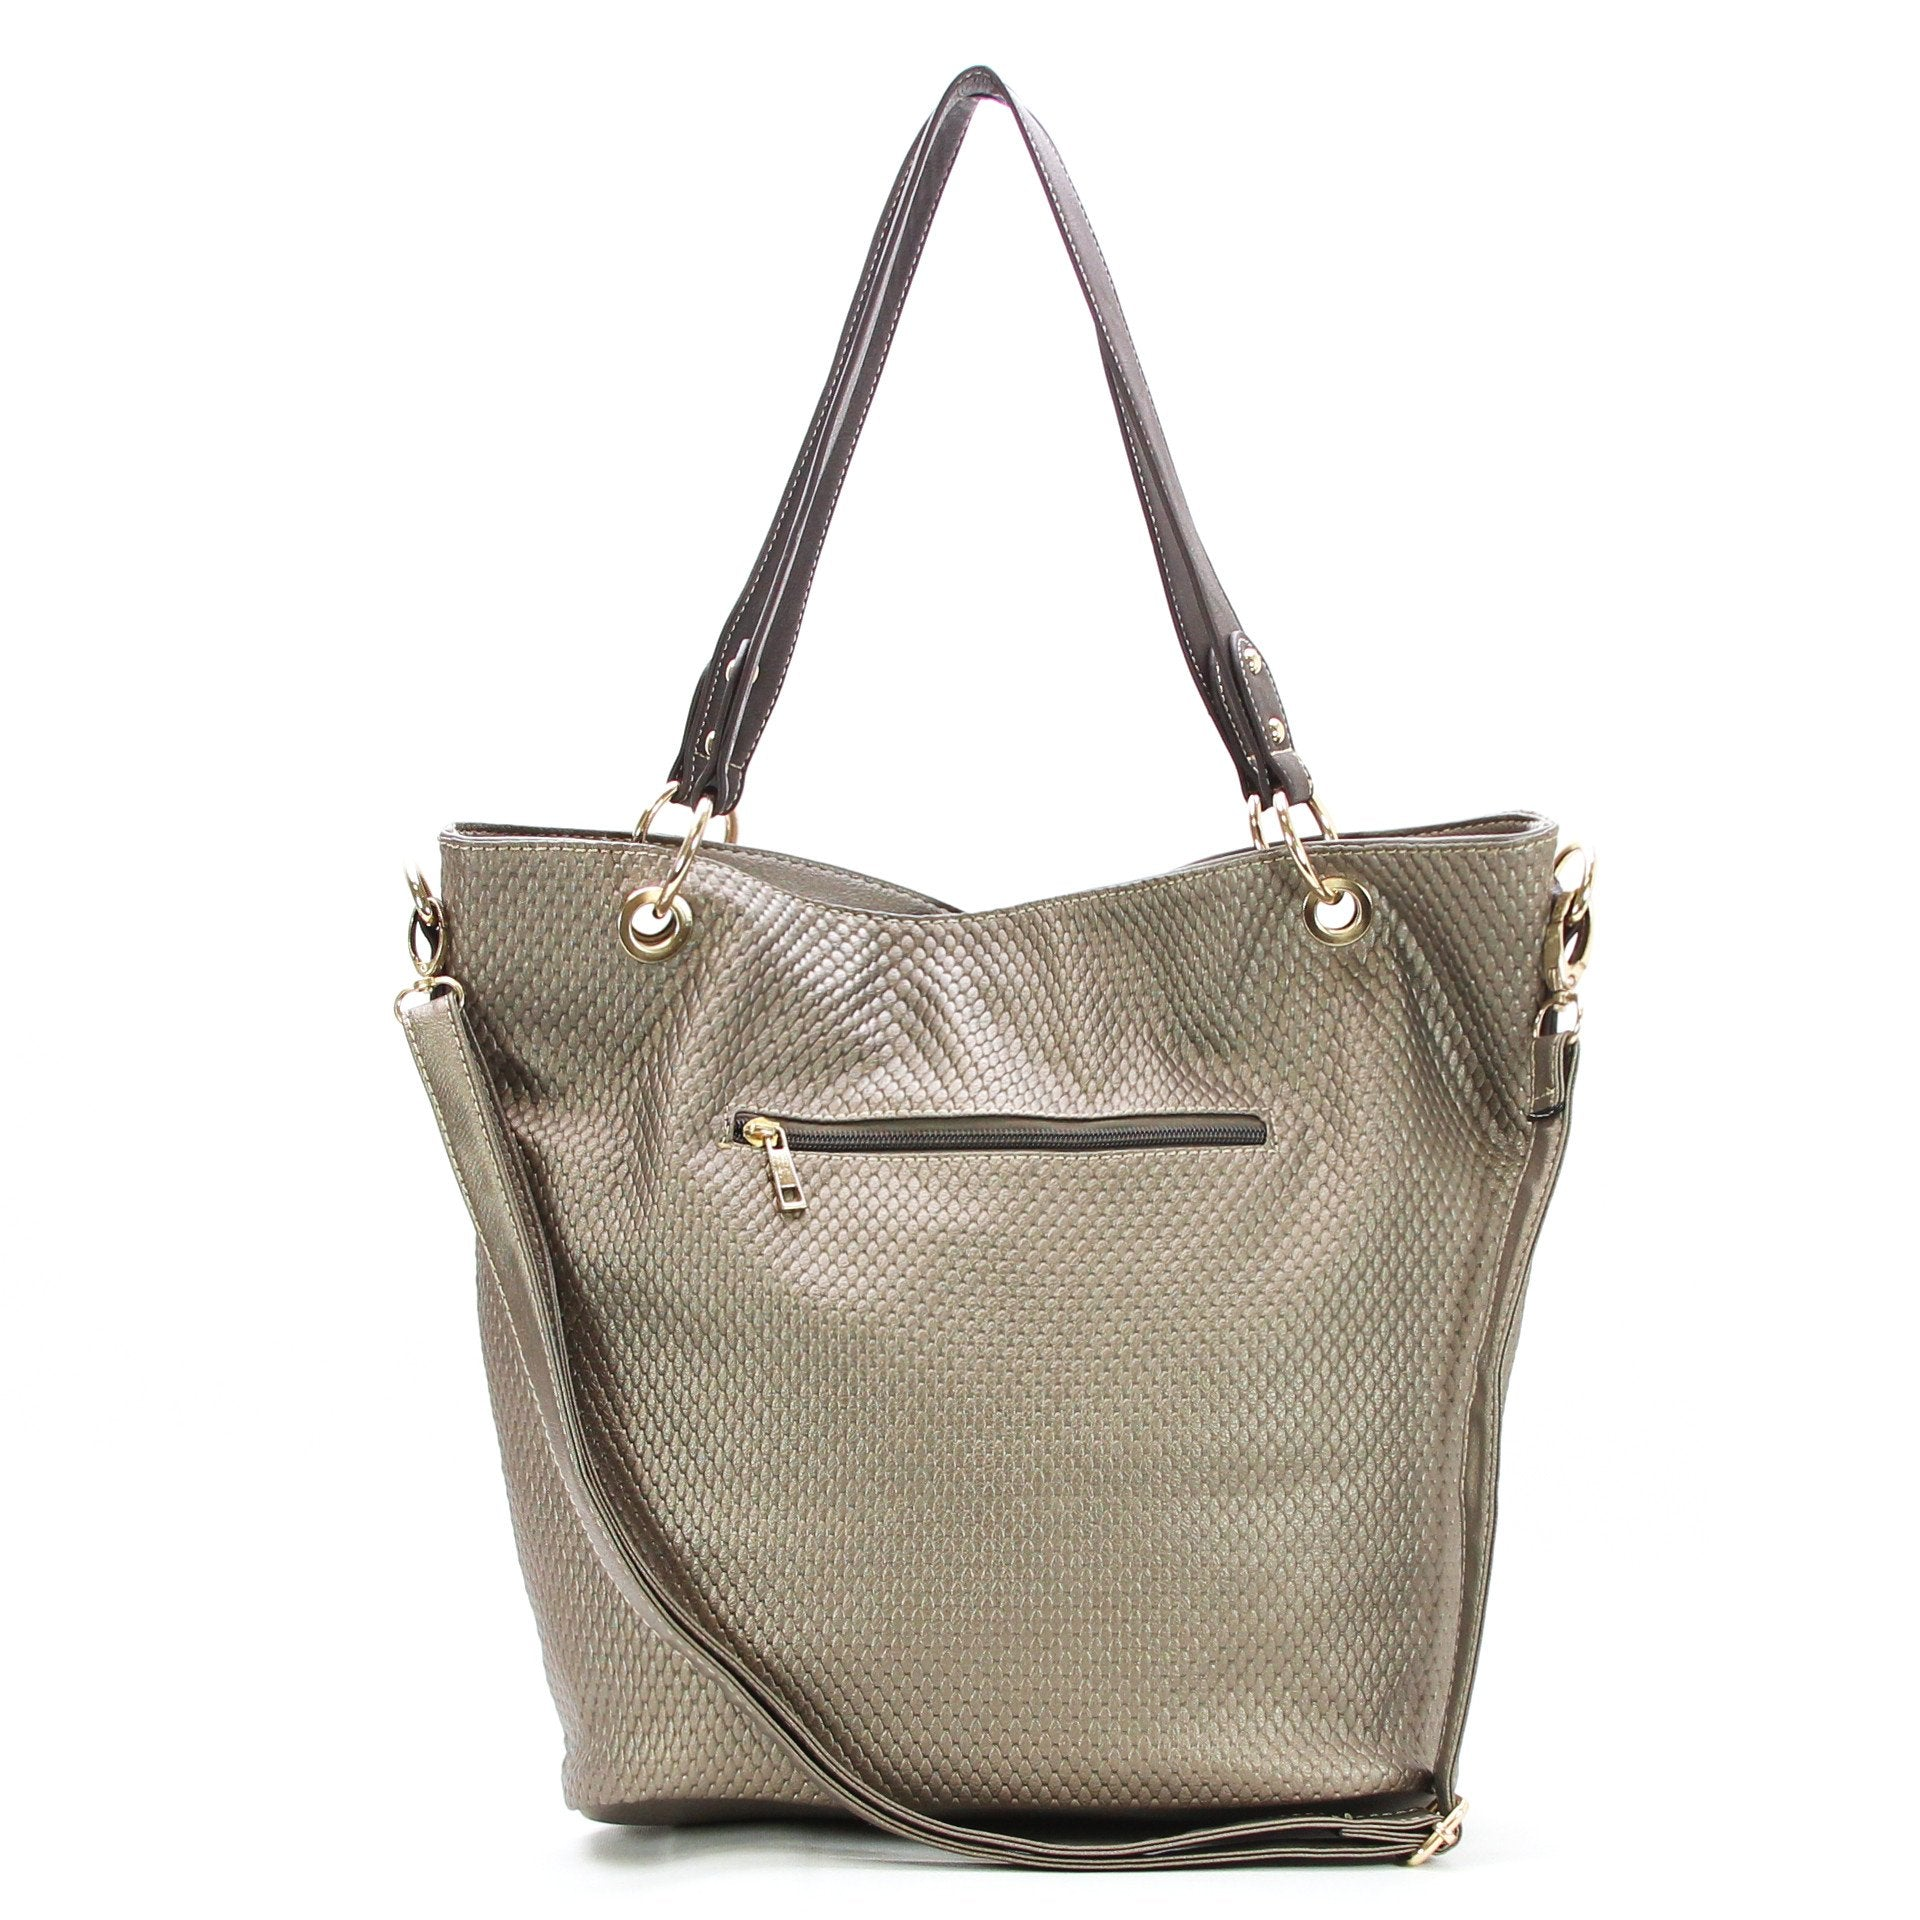 Casual Everyday Tassell Purse Handbag Tote Bag-Brown - Pop Fashion